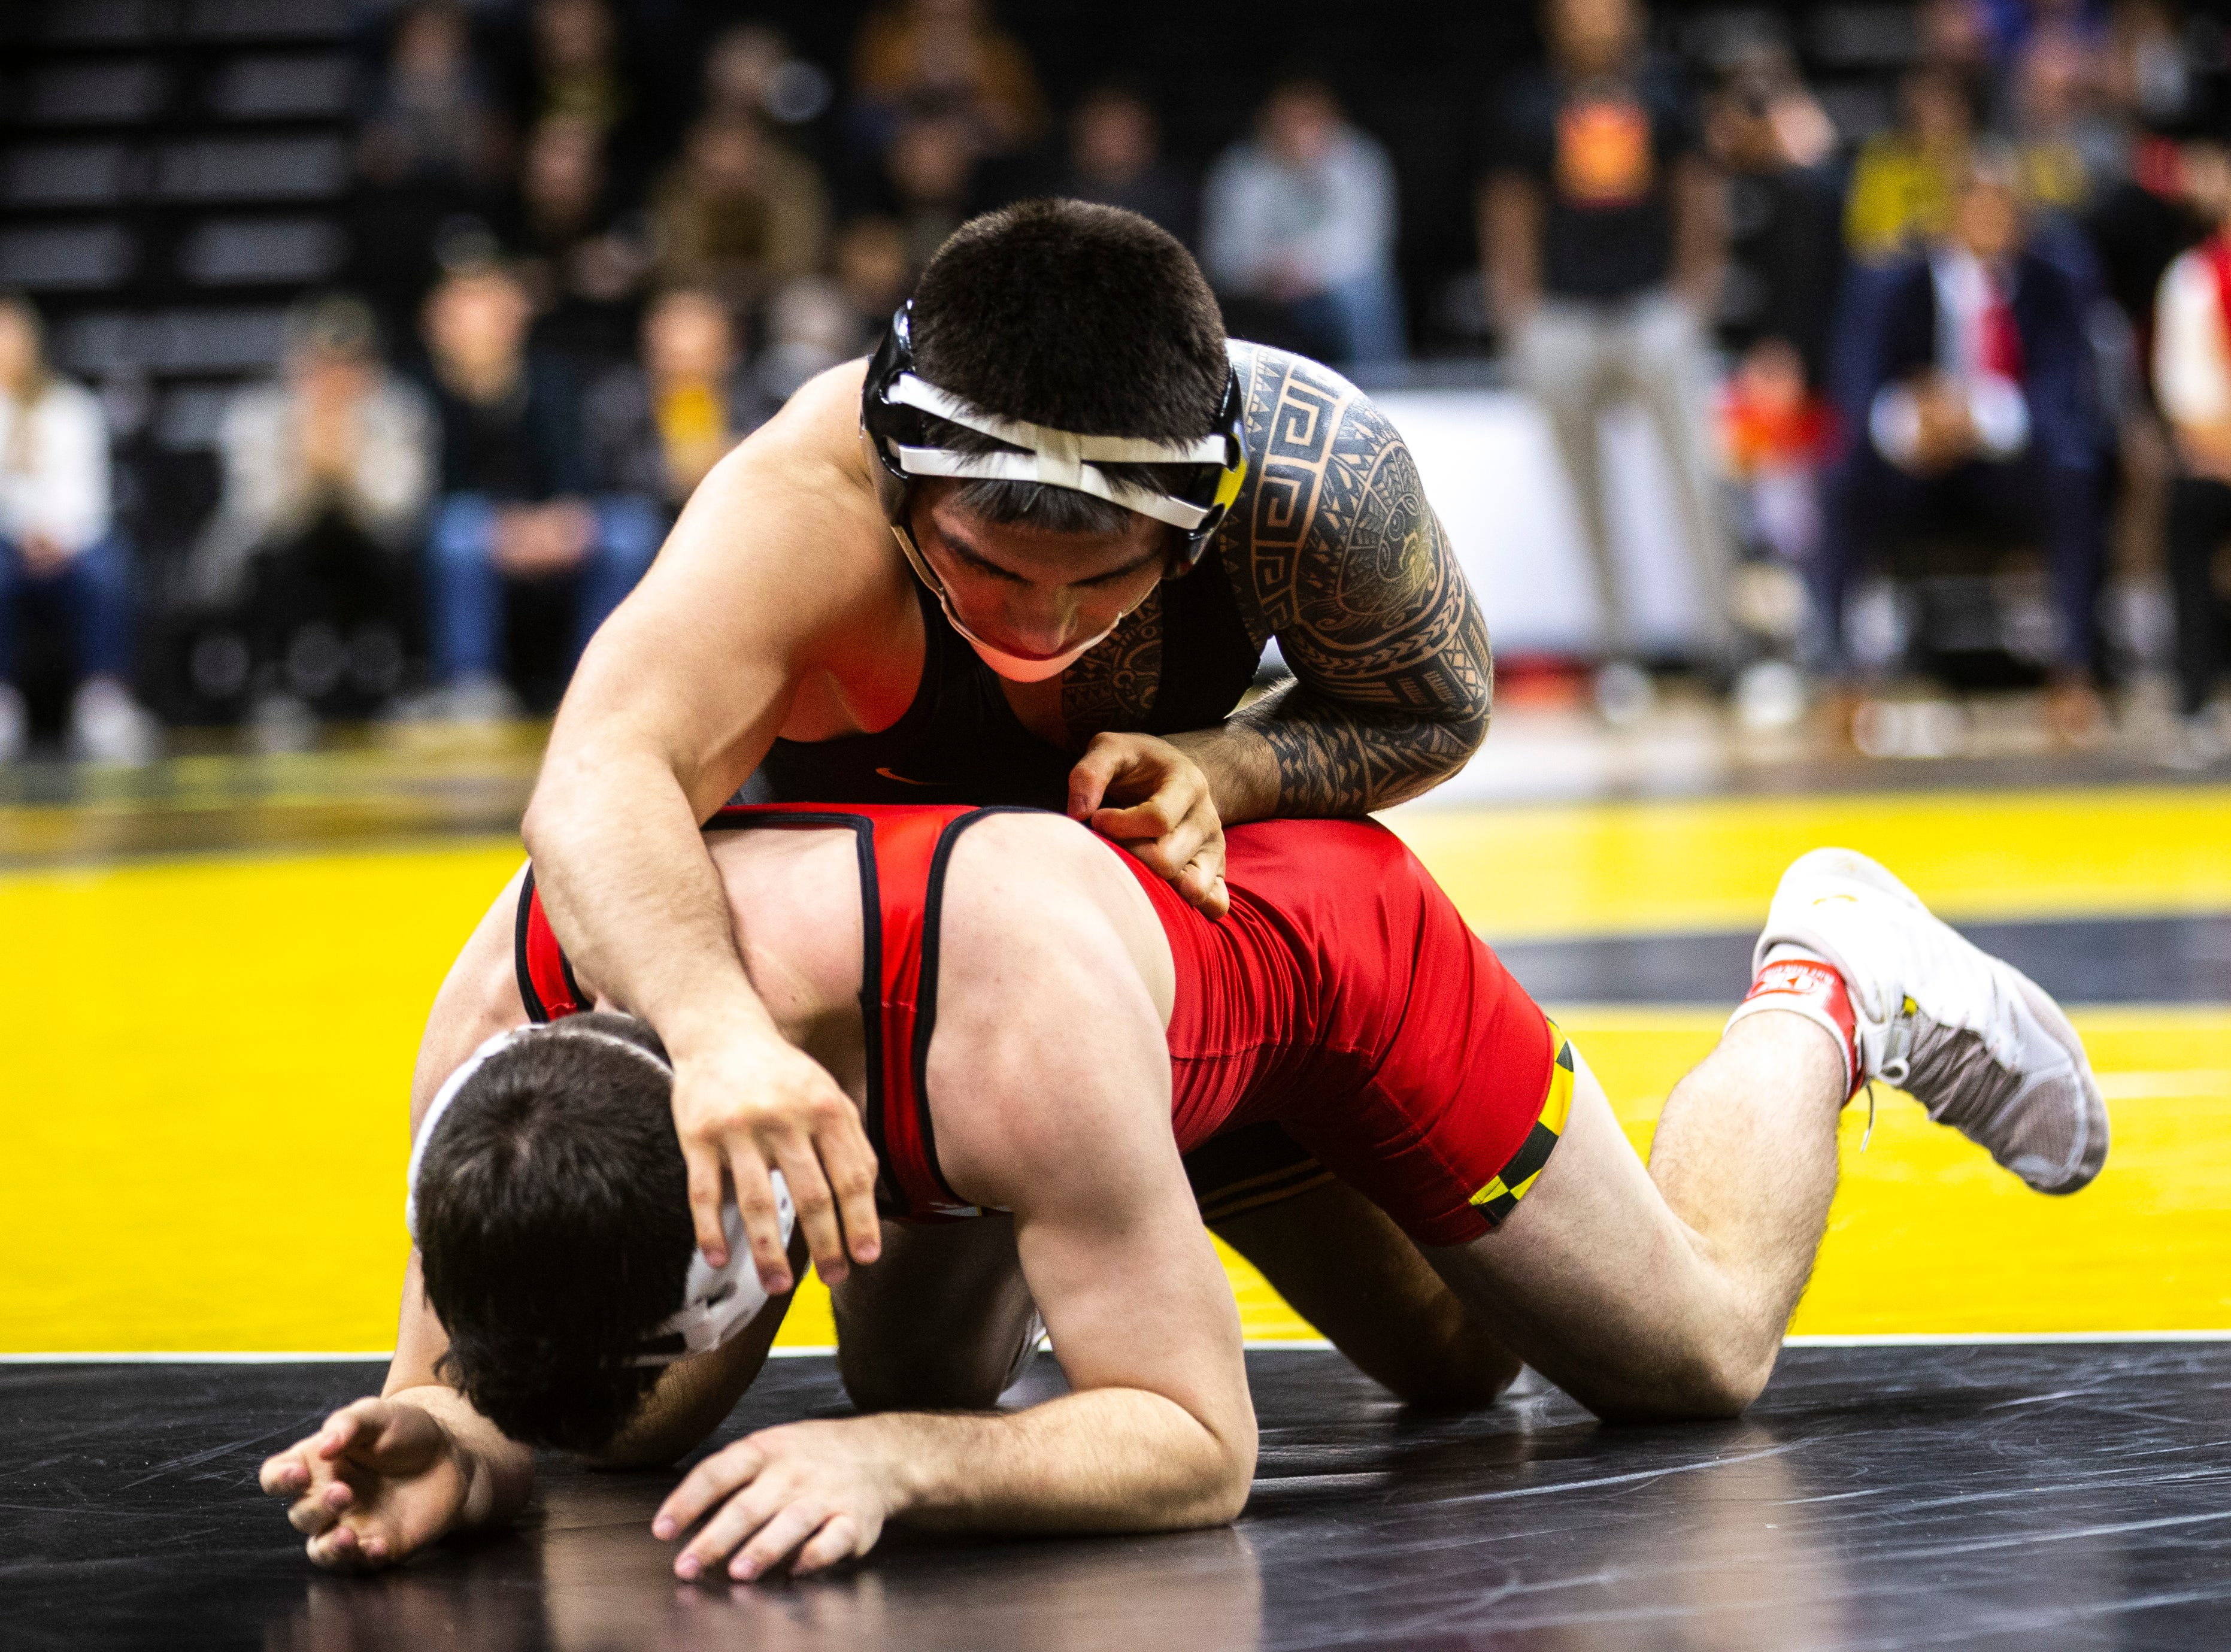 Iowa's Pat Lugo, top, wrestles Maryland's Pete Tedesco at 149 during a NCAA Big Ten Conference wrestling dual on Friday, Feb. 8, 2019 at Carver-Hawkeye Arena in Iowa City, Iowa.